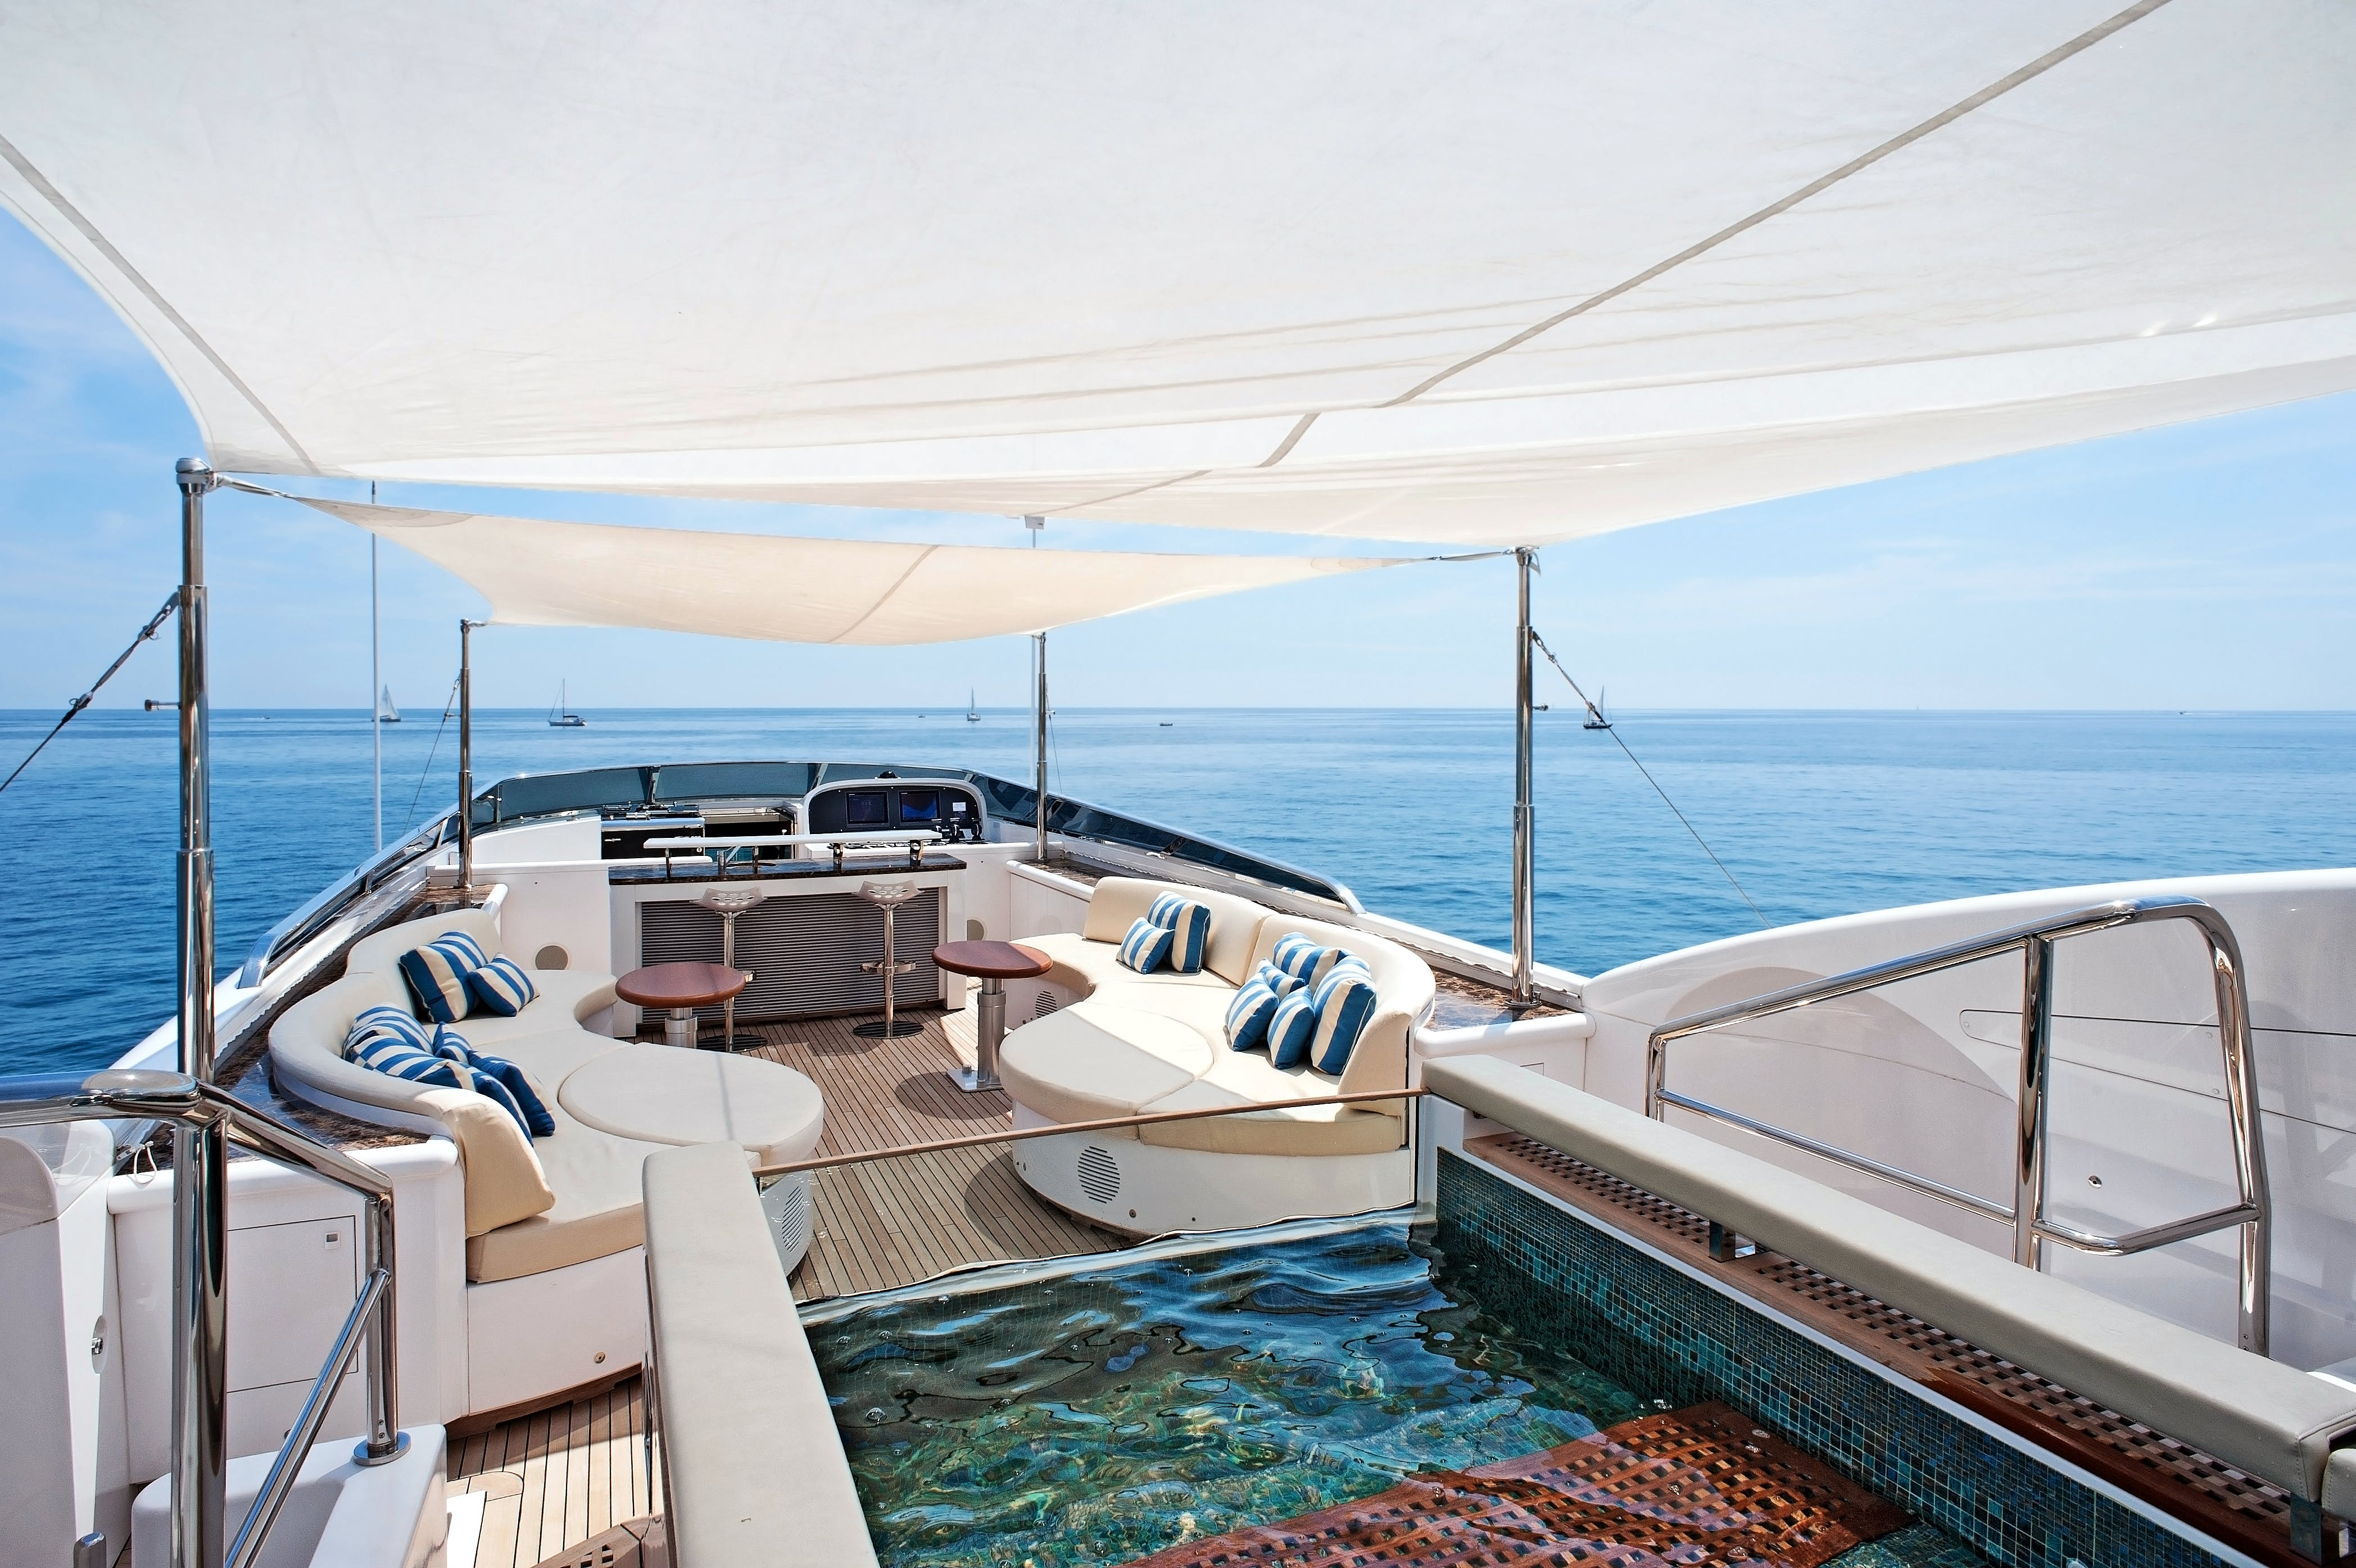 Alfresco lounge area of charter yacht TUTTO LE MARRANE on water.